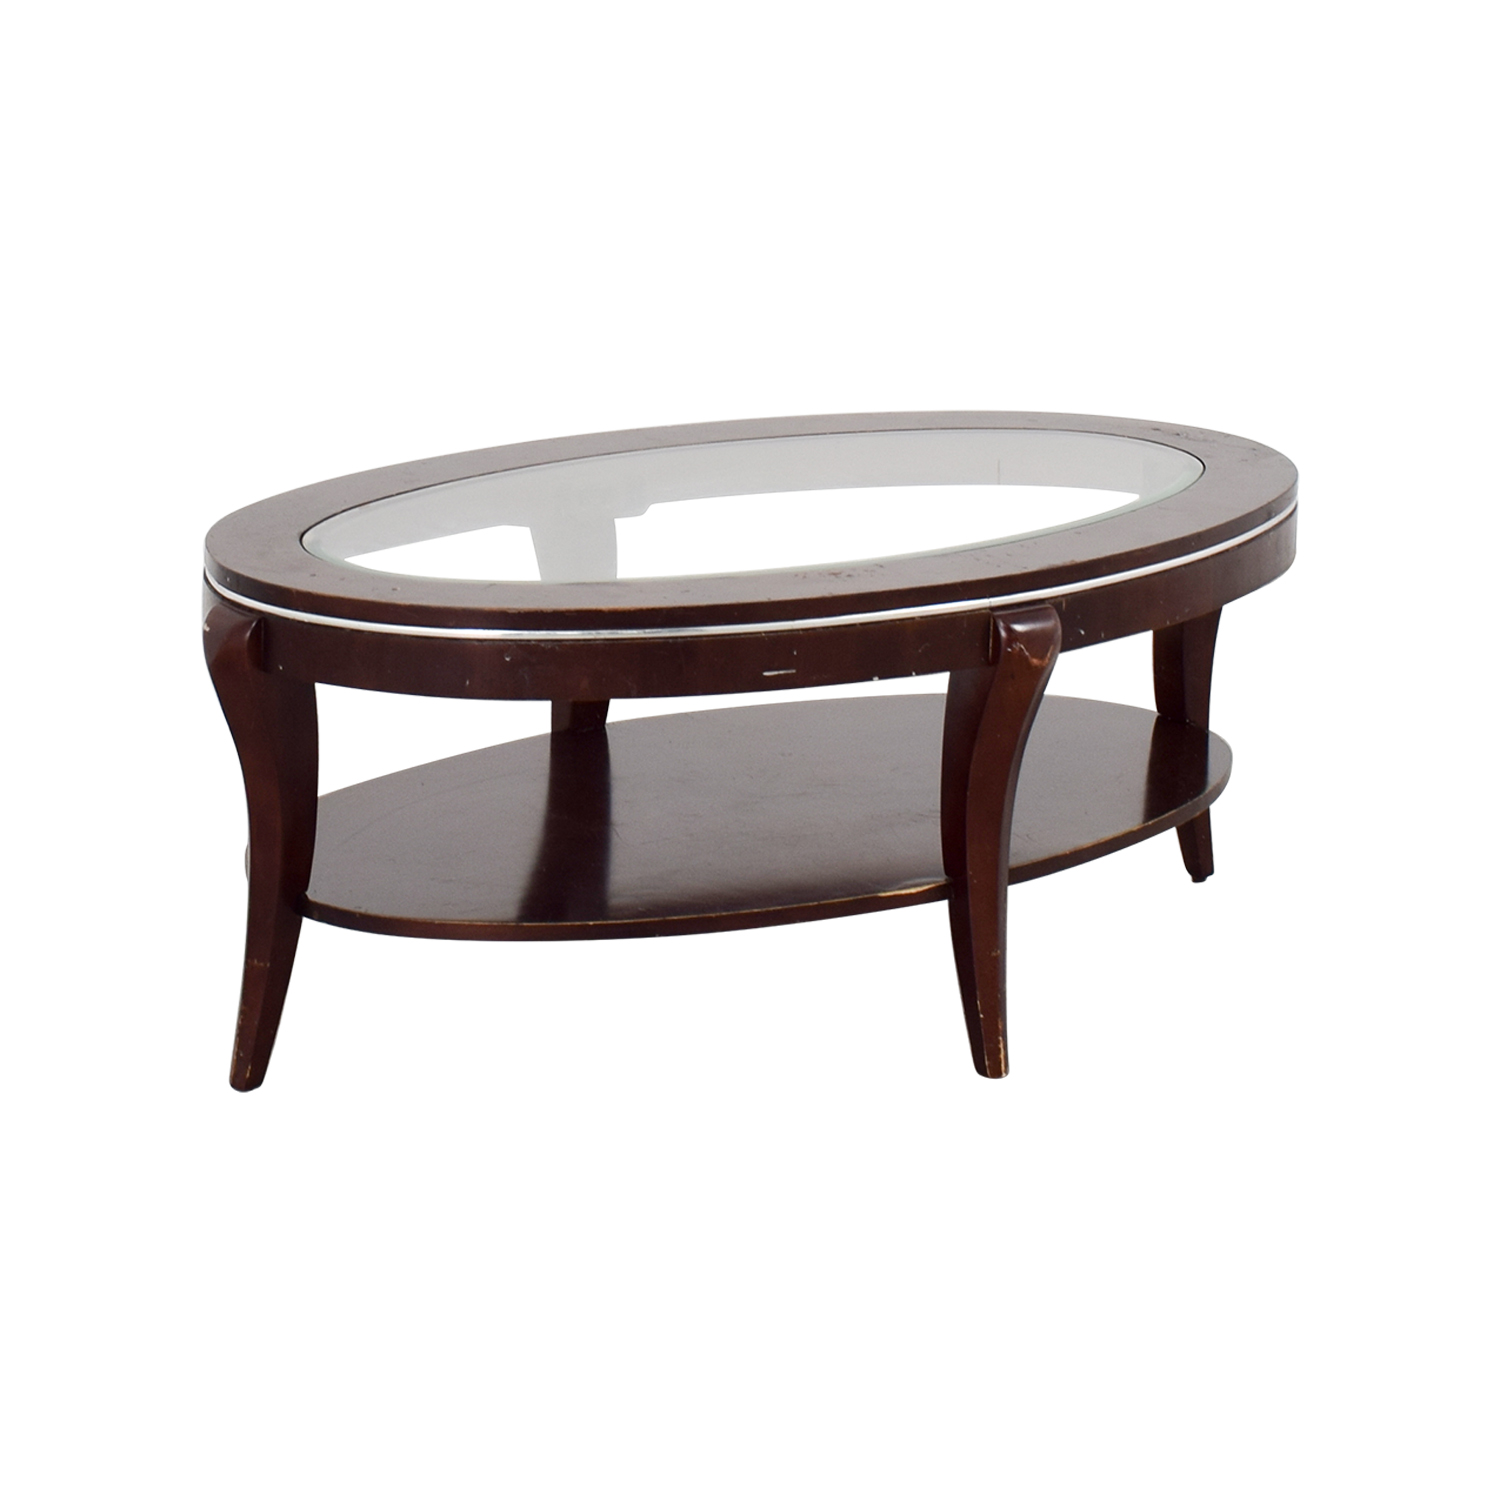 89 off wood and glass oval coffee table tables Glass oval coffee tables